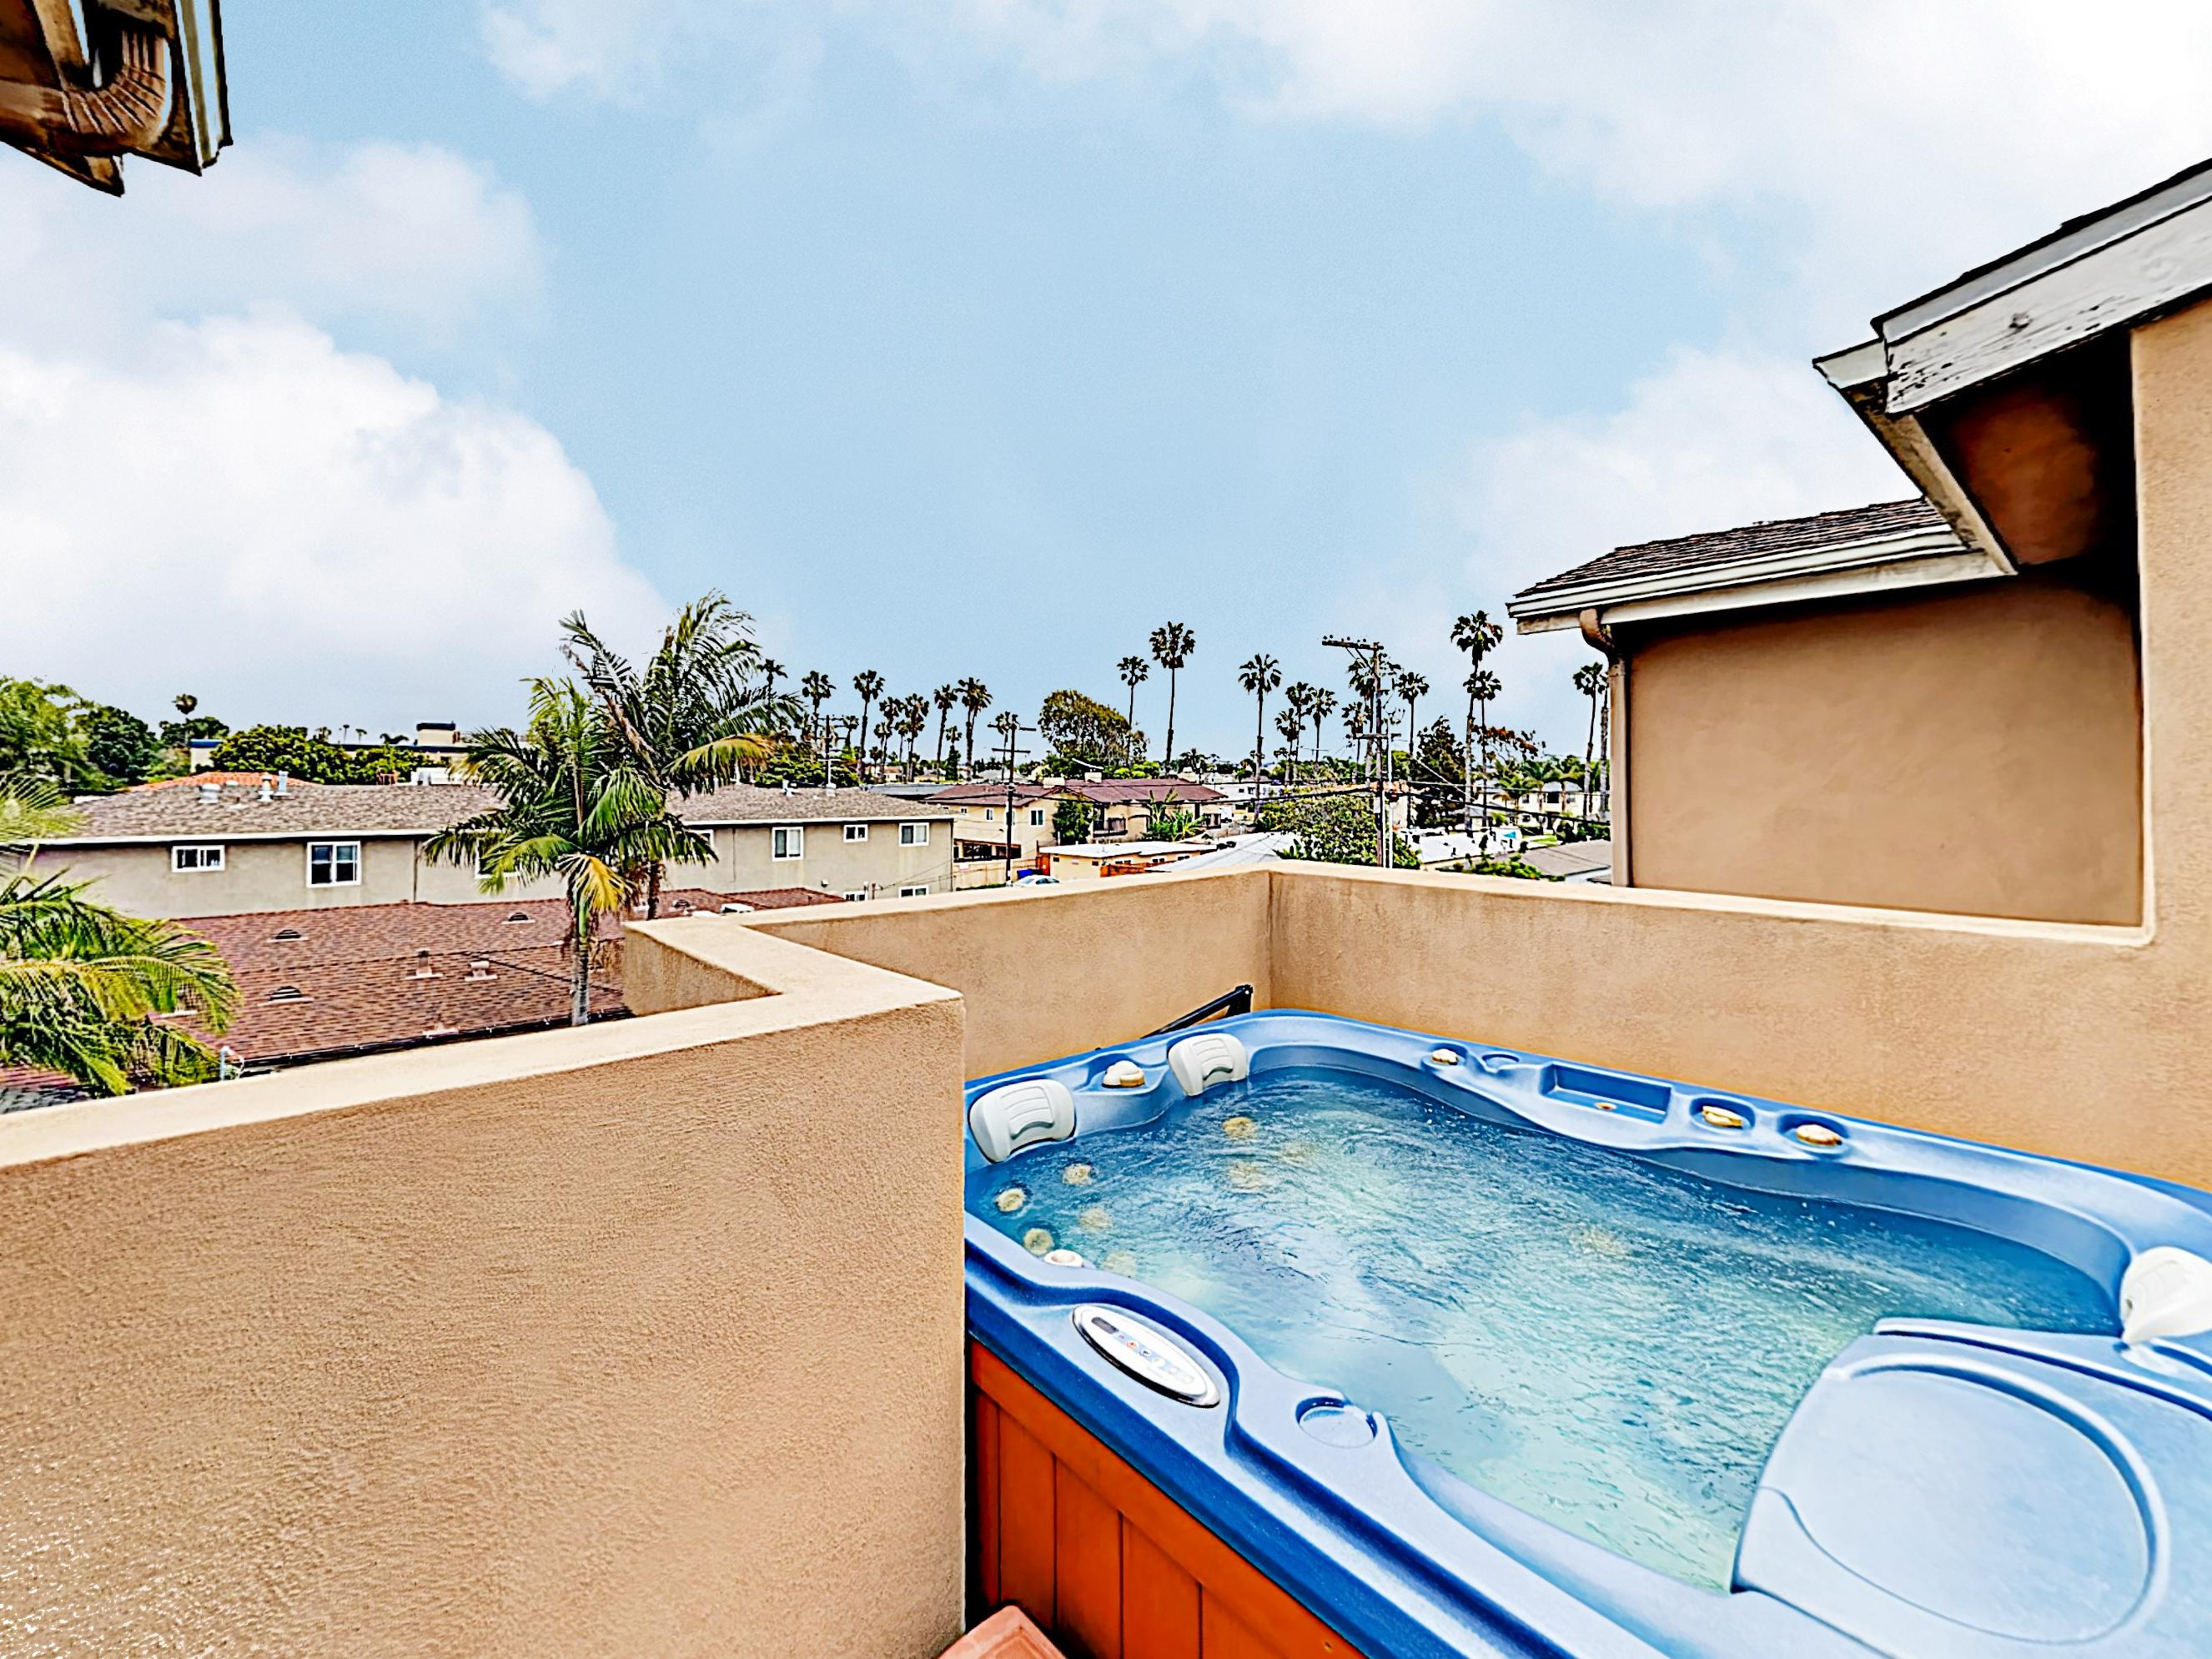 Welcome to Pacific Beach! This home is professionally managed by TurnKey Vacation Rentals.